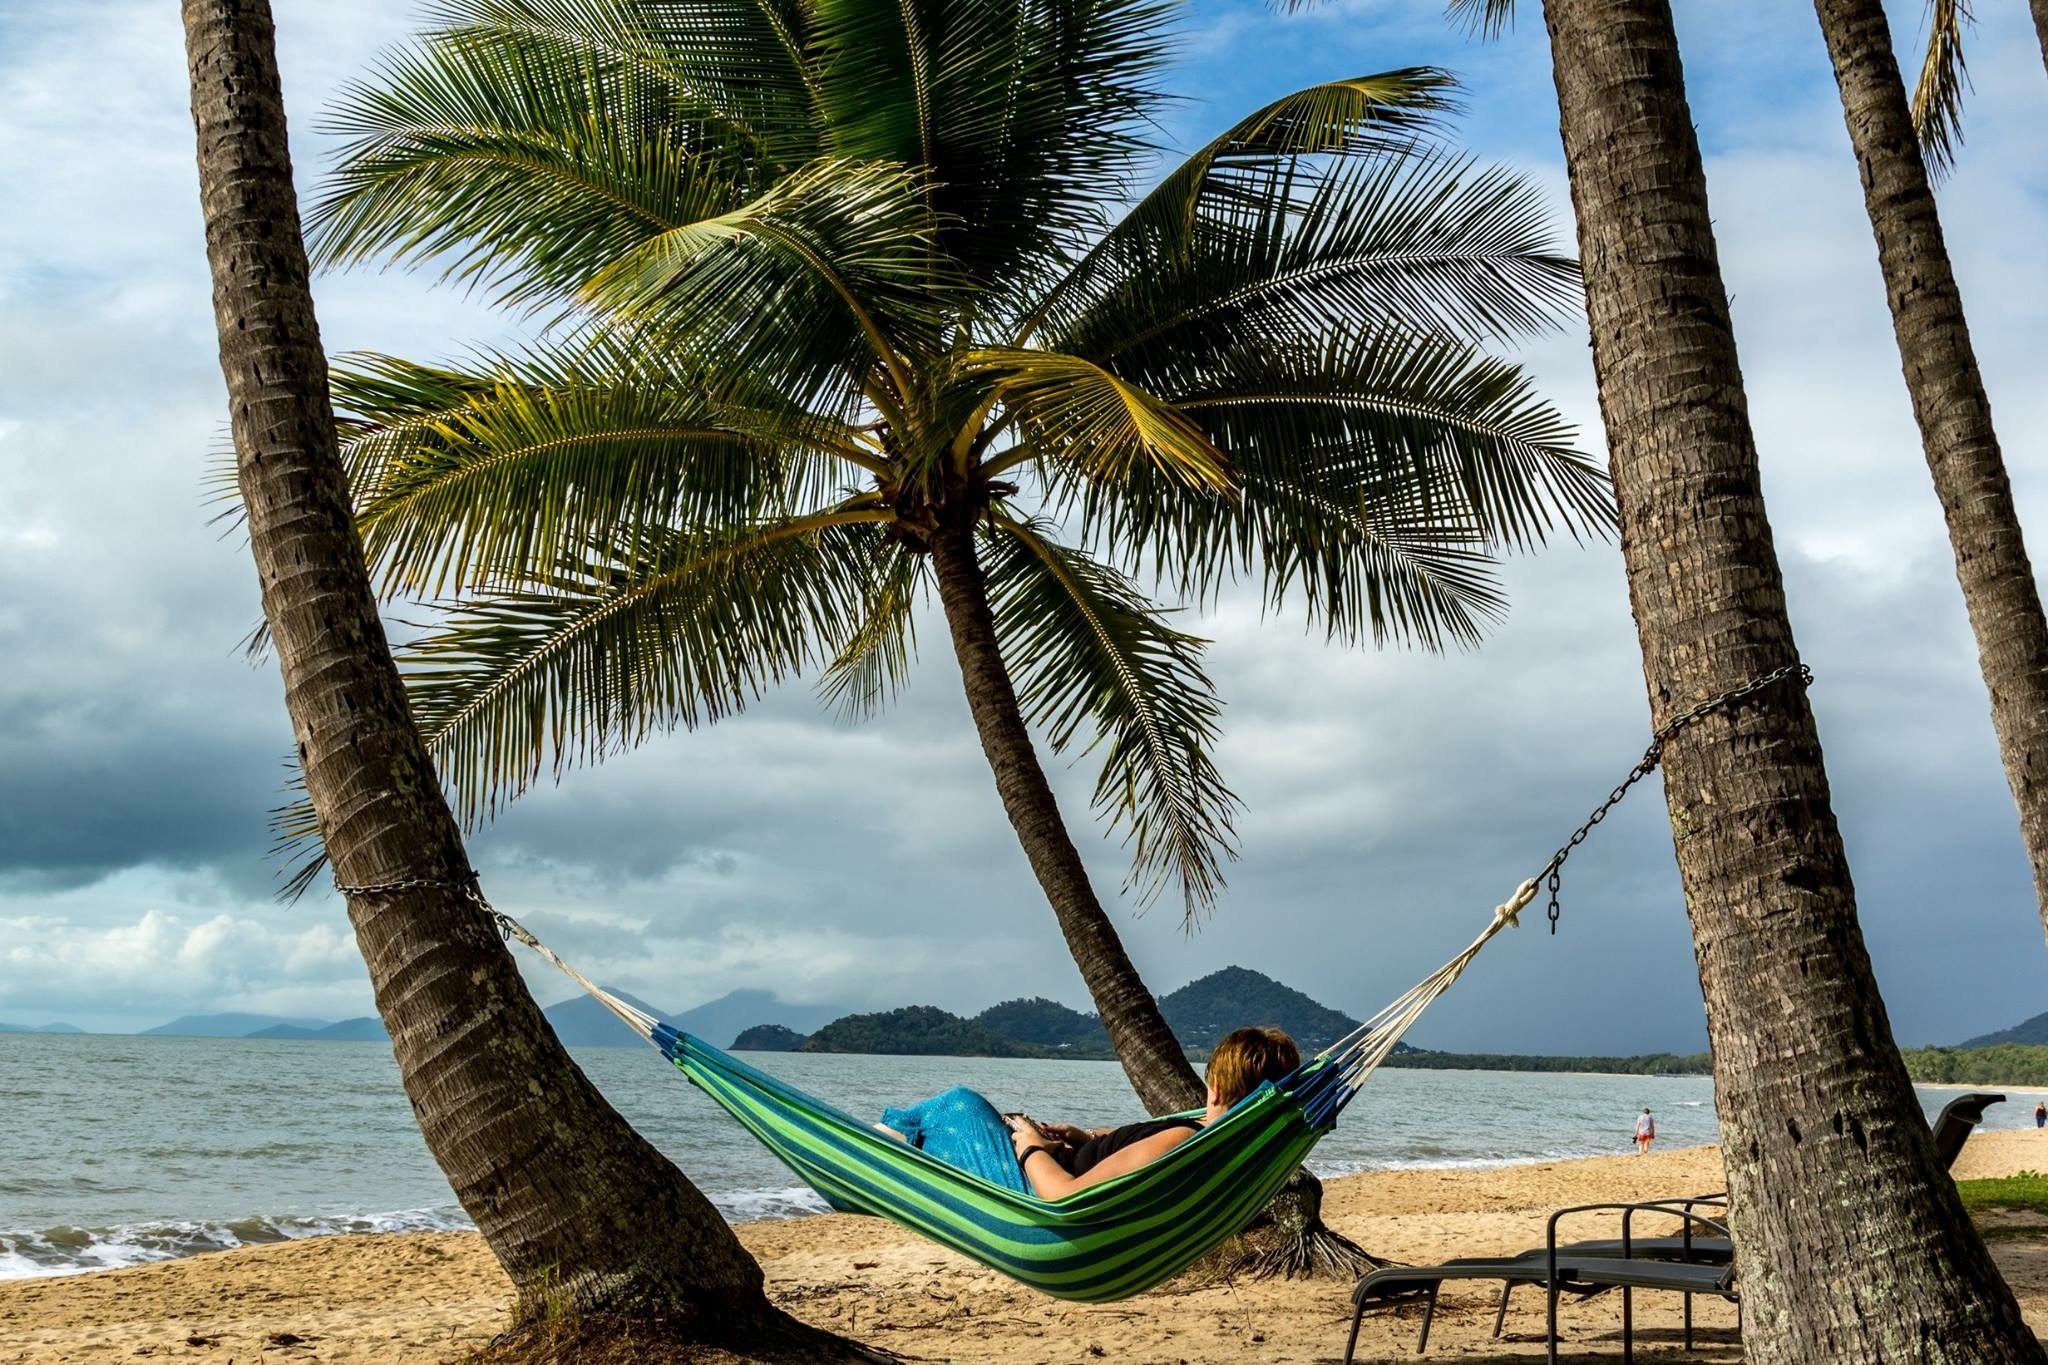 Woman in hammock between palm trees by jmimages